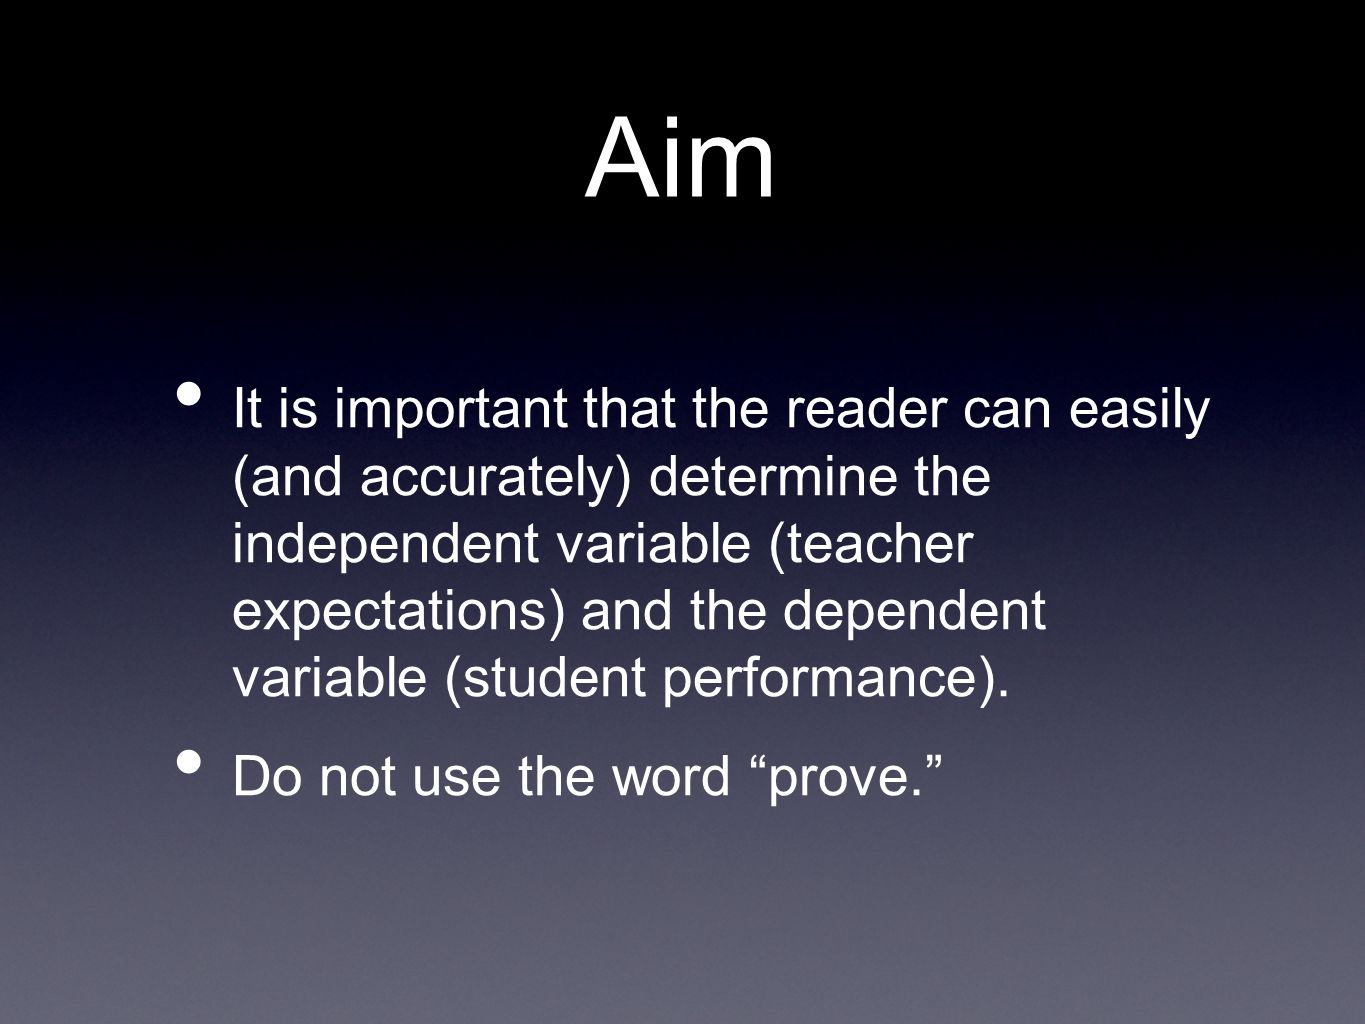 Aim It is important that the reader can easily (and accurately) determine the independent variable (teacher expectations) and the dependent variable (student performance).